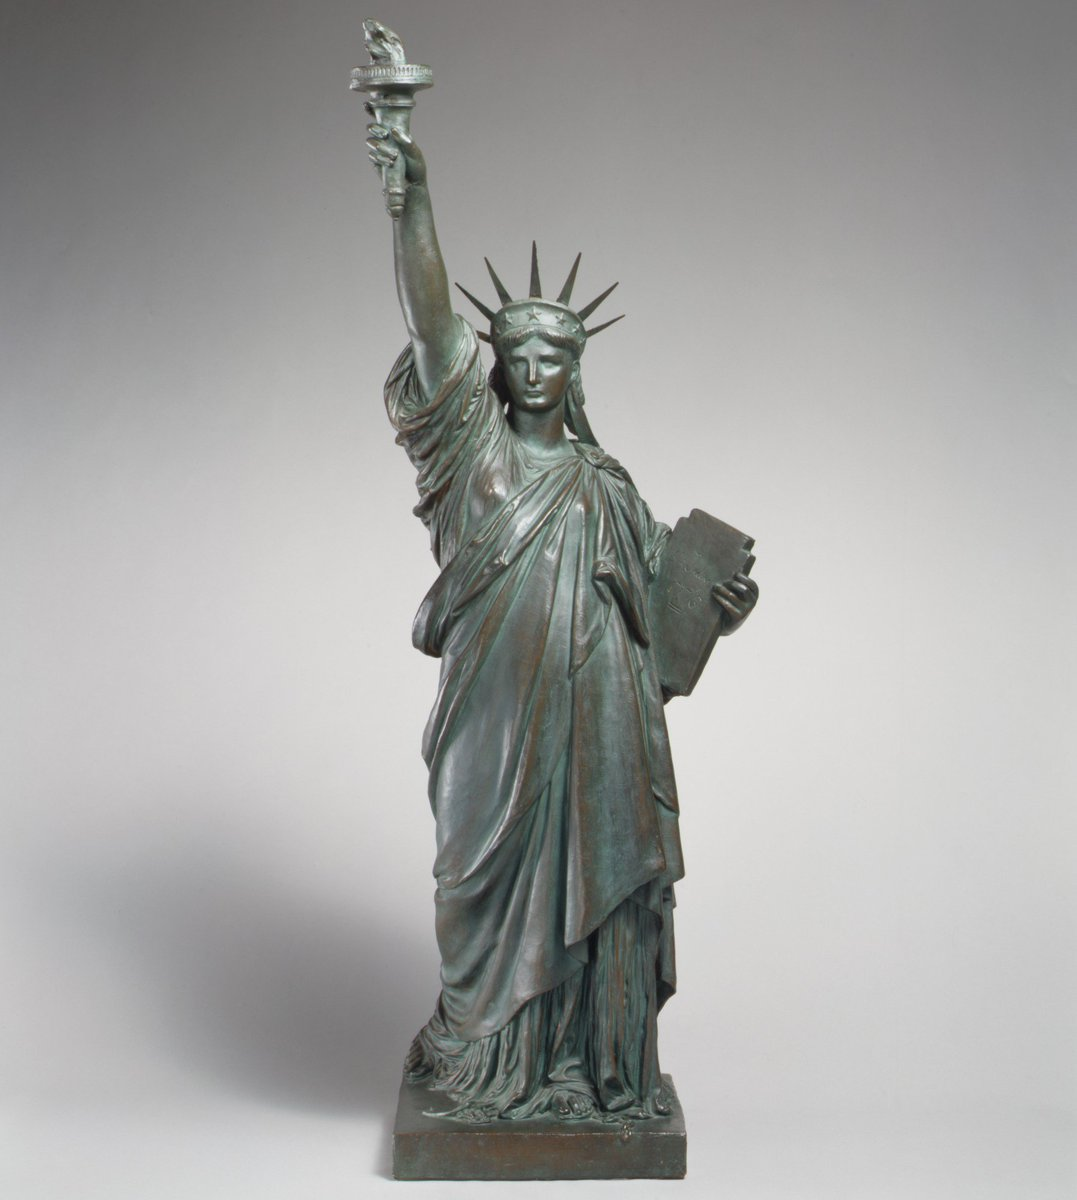 The Statue of Liberty arrived in New York Harbor from France on this day in 1885. https://t.co/YLMMlBDZyT